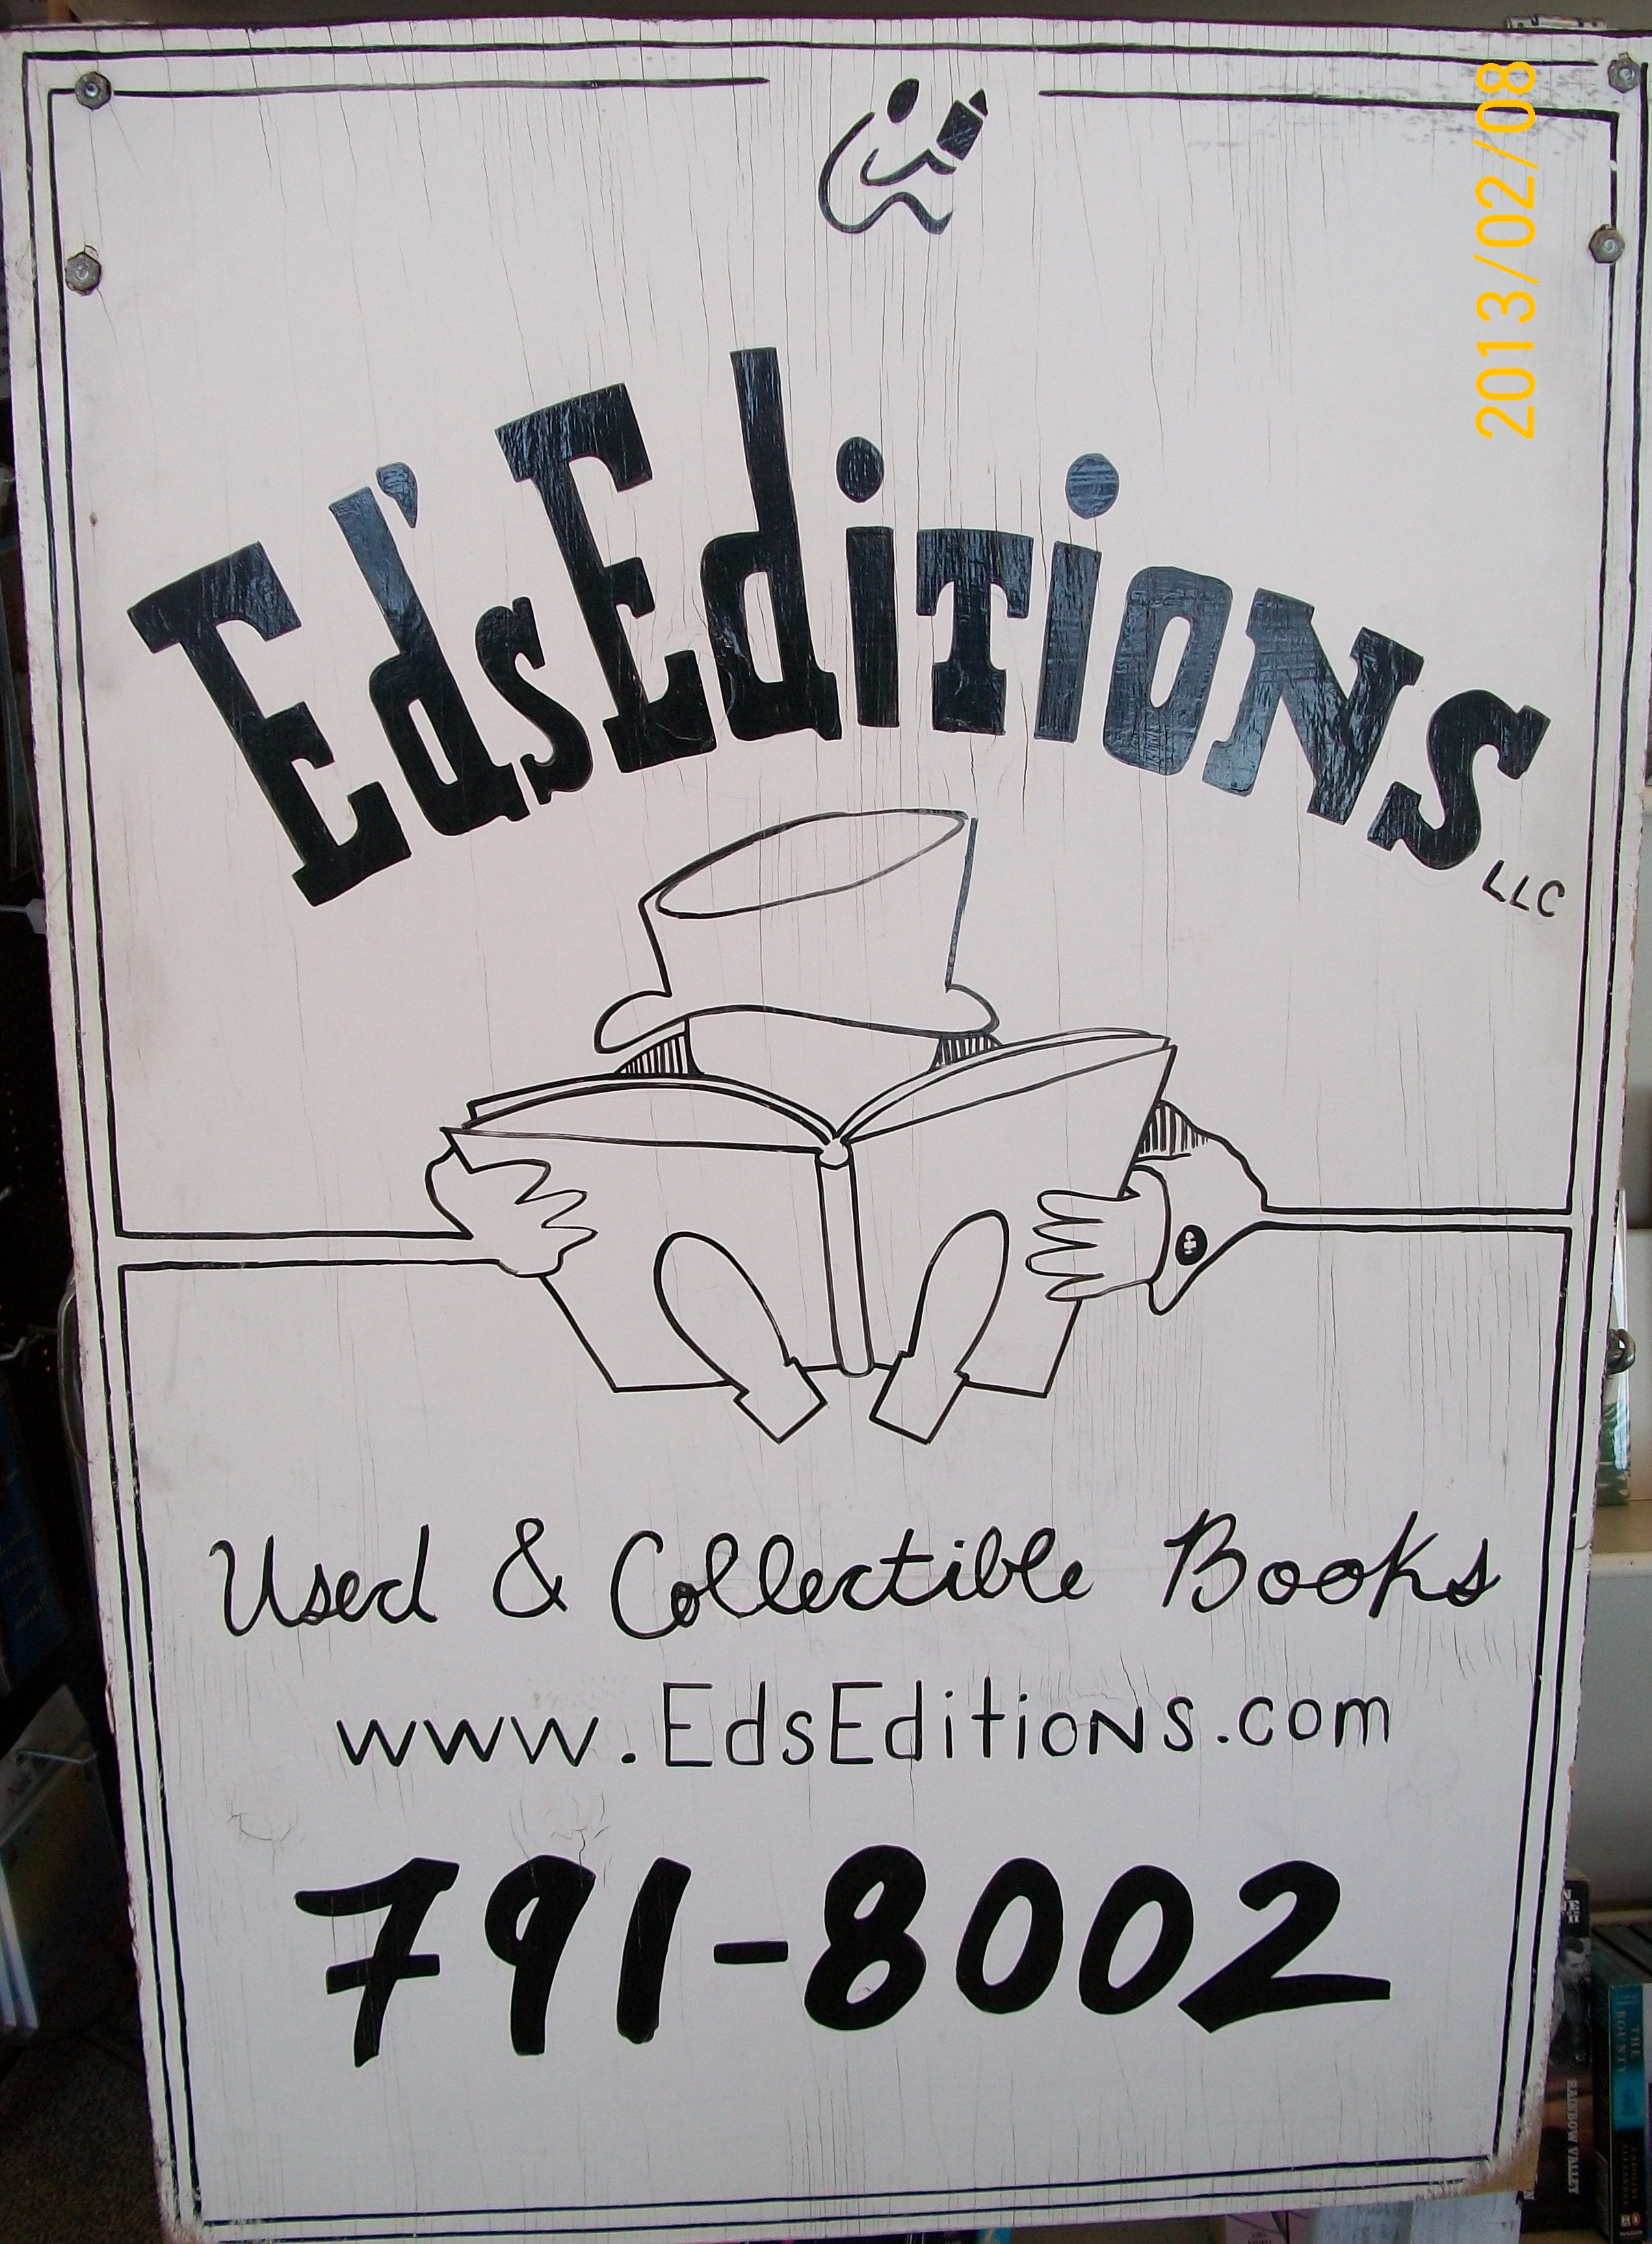 Ed's Editions, LLC